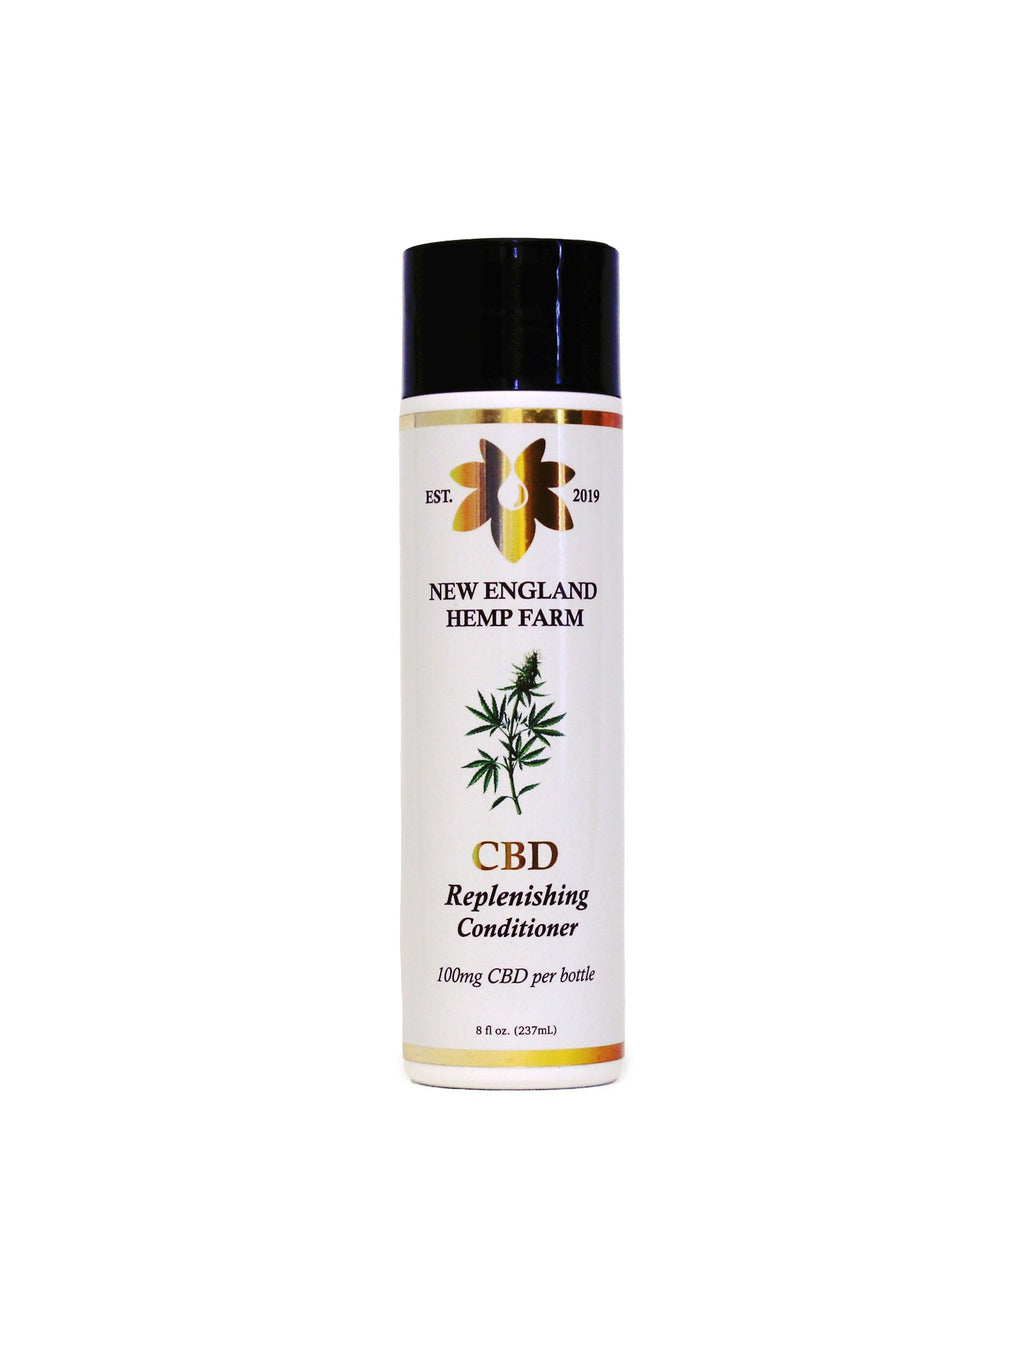 Replenishing Conditioner with 100mg of CBD